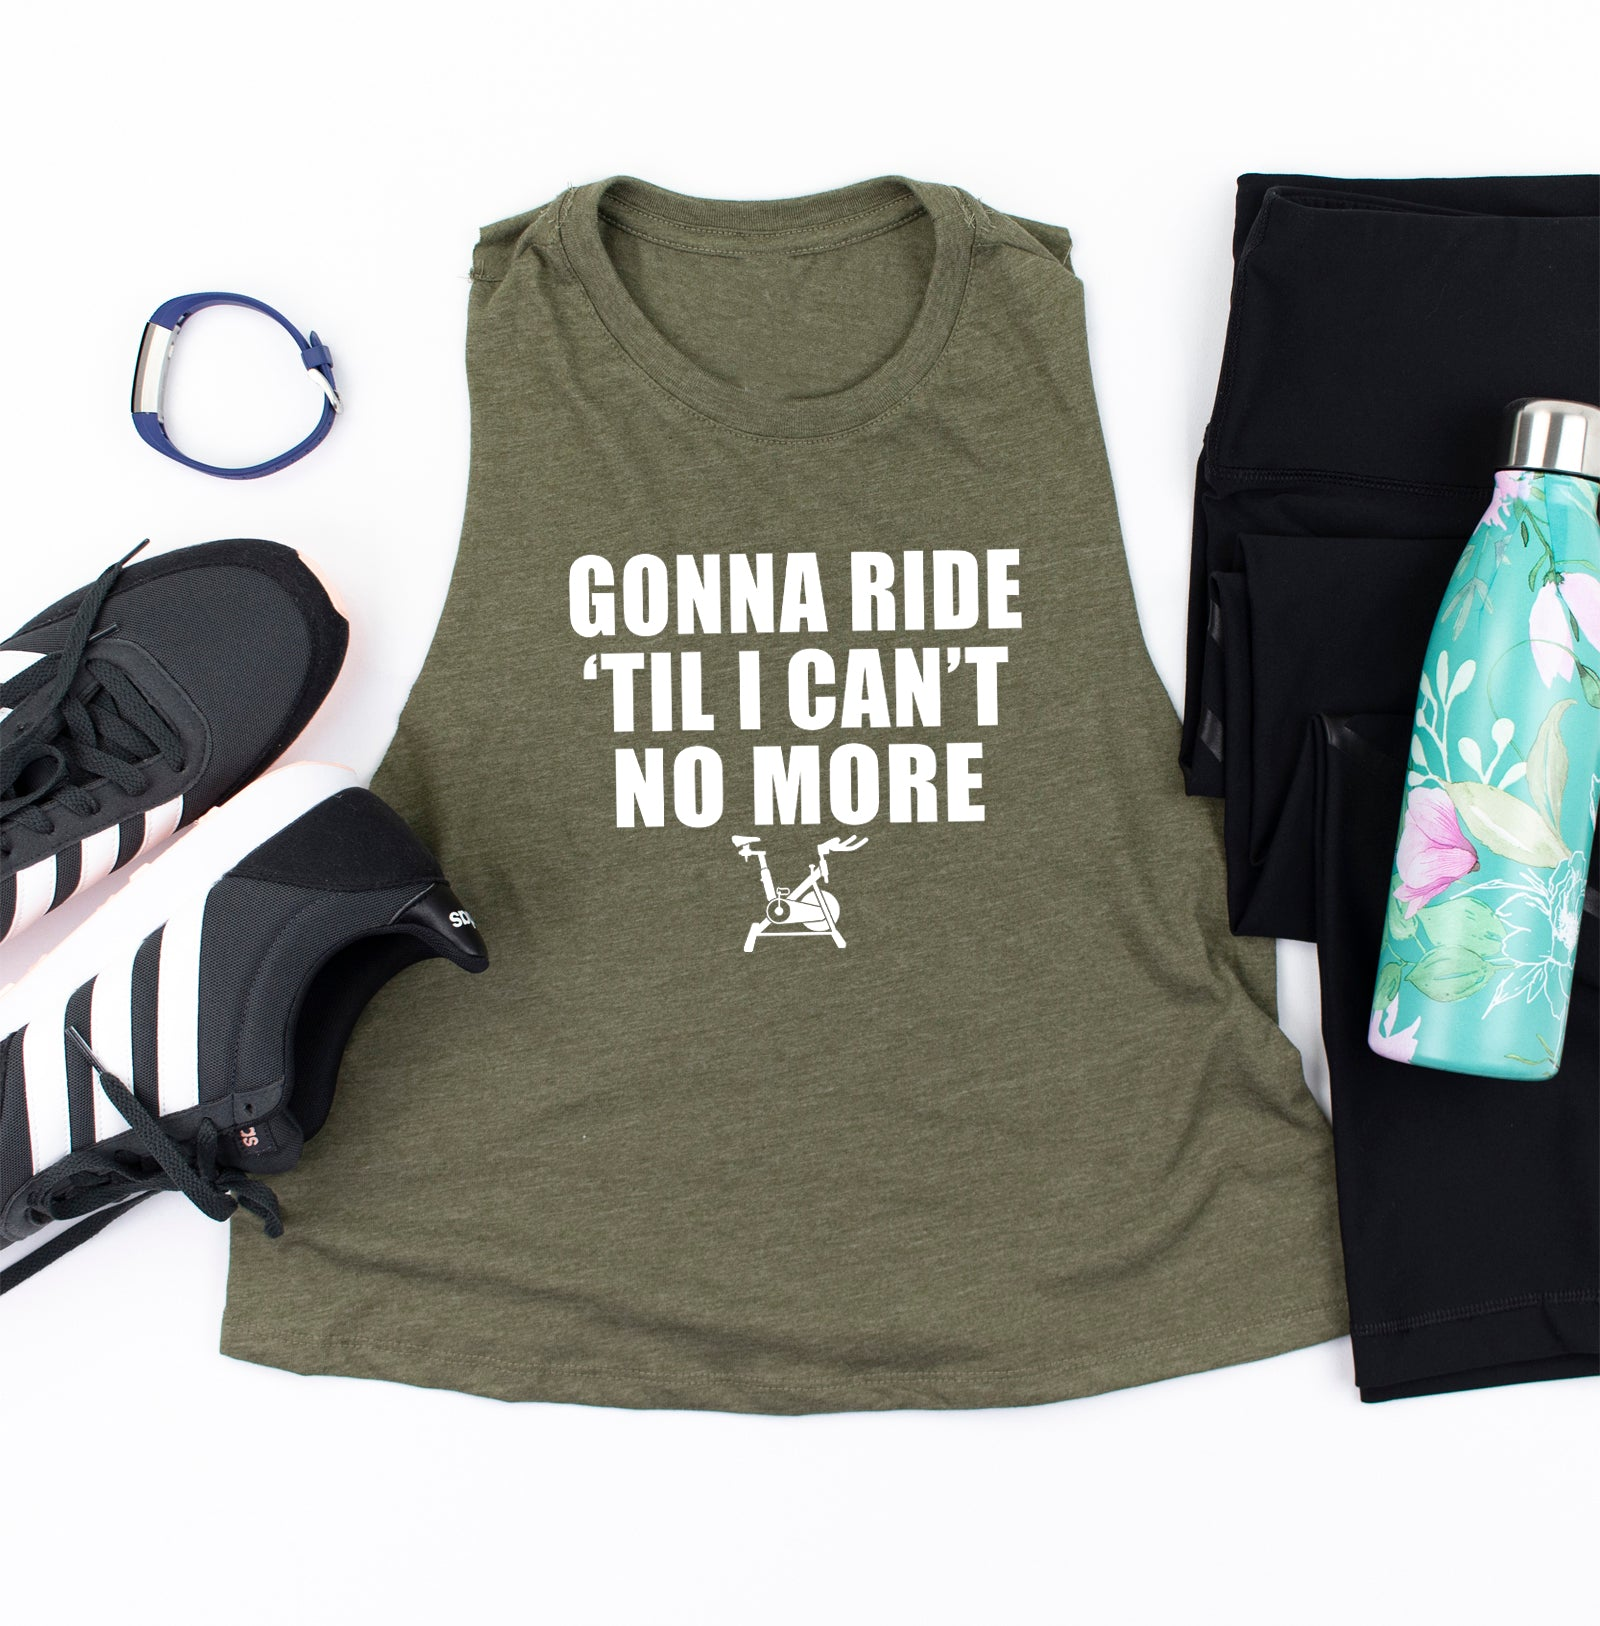 Gonna Ride Til I Can't No More. Fitness Tank. Workout Shirt. Tap Backs. Soul Ride. Spinning. Cycling. Funny Workout. Instructor. Ride Shine